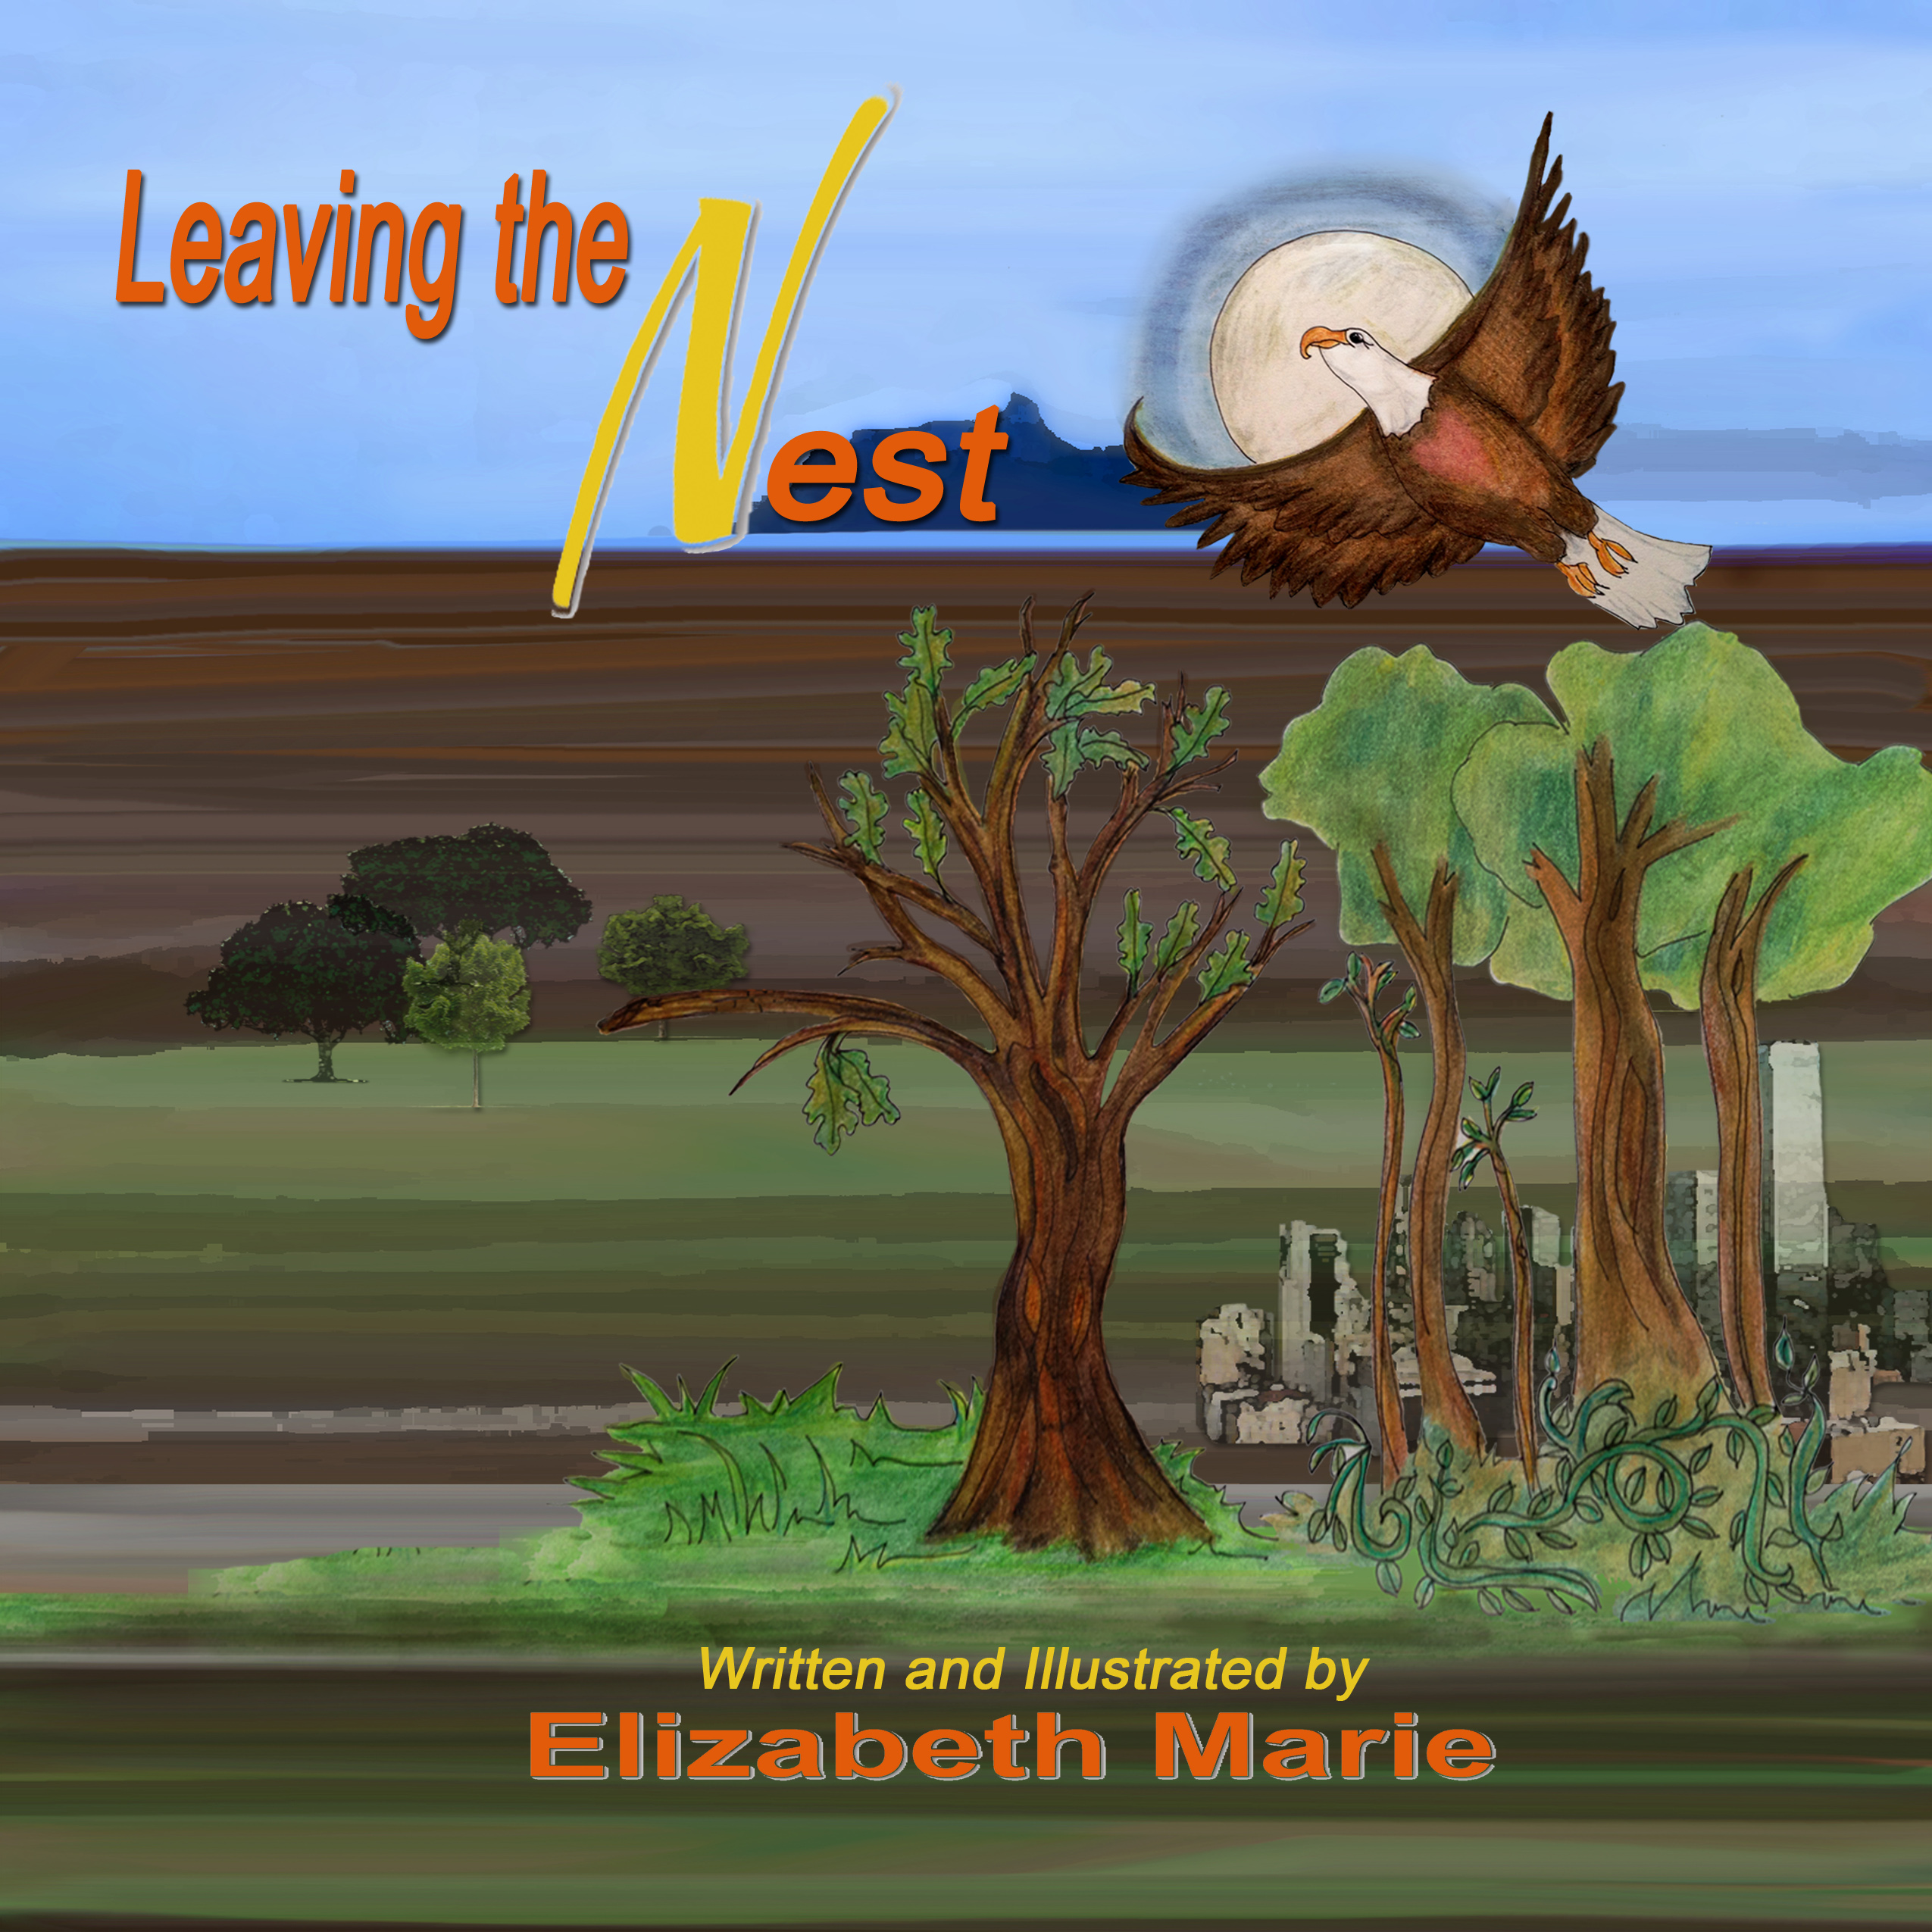 Leaving The Nest by Elizabeth Marie emariegallery.com Inspirational wisdom story